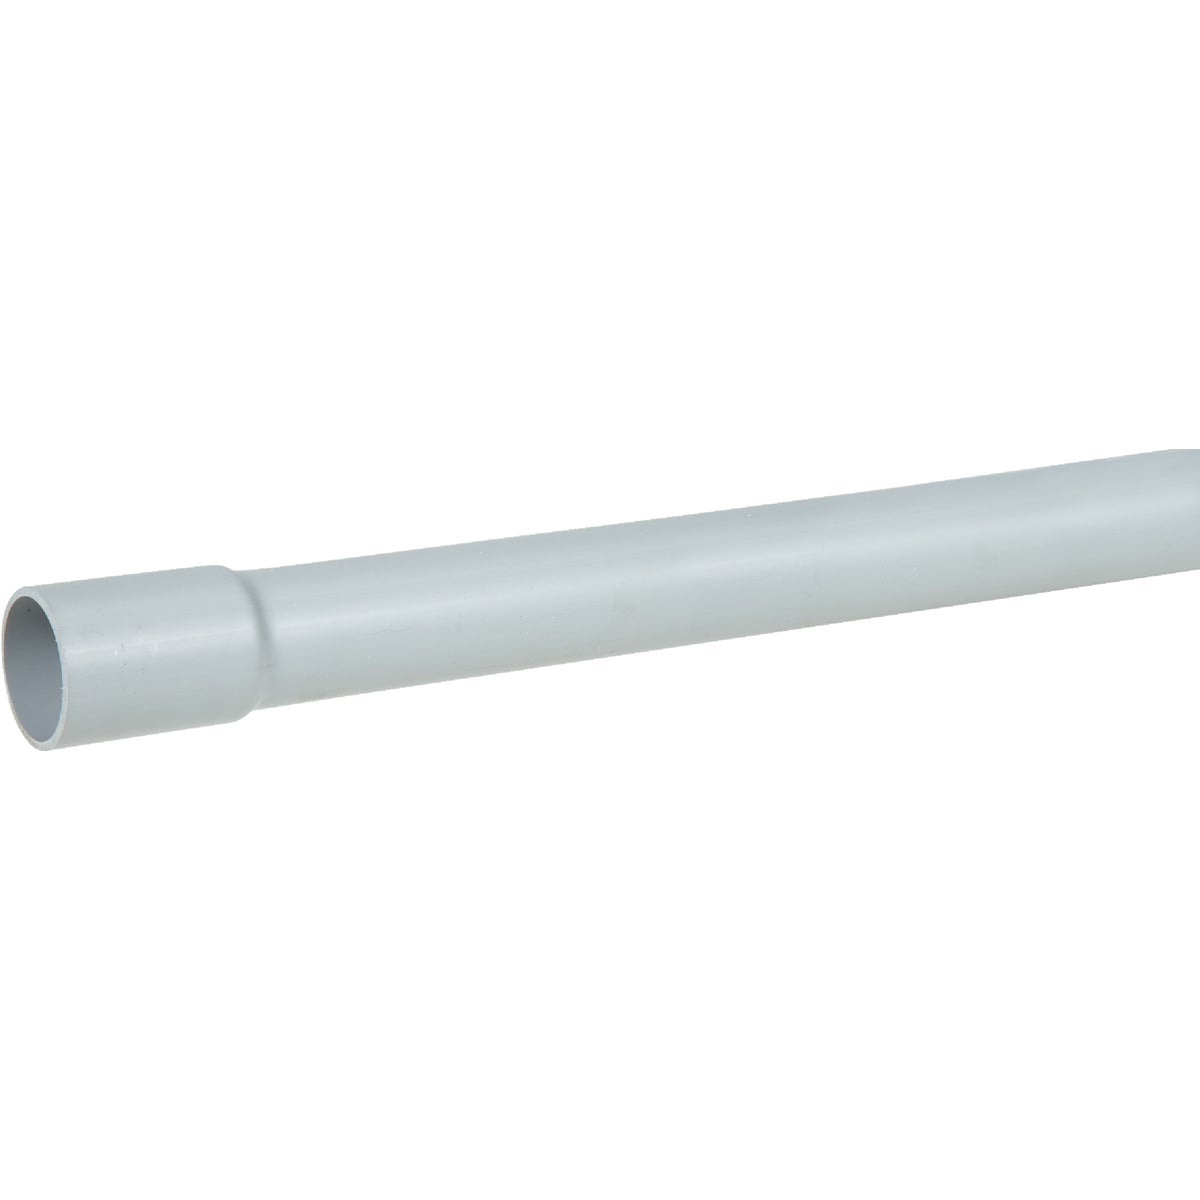 "3/4"" SCH40 10' CONDUIT - 49007-010 by Prime Conduit"